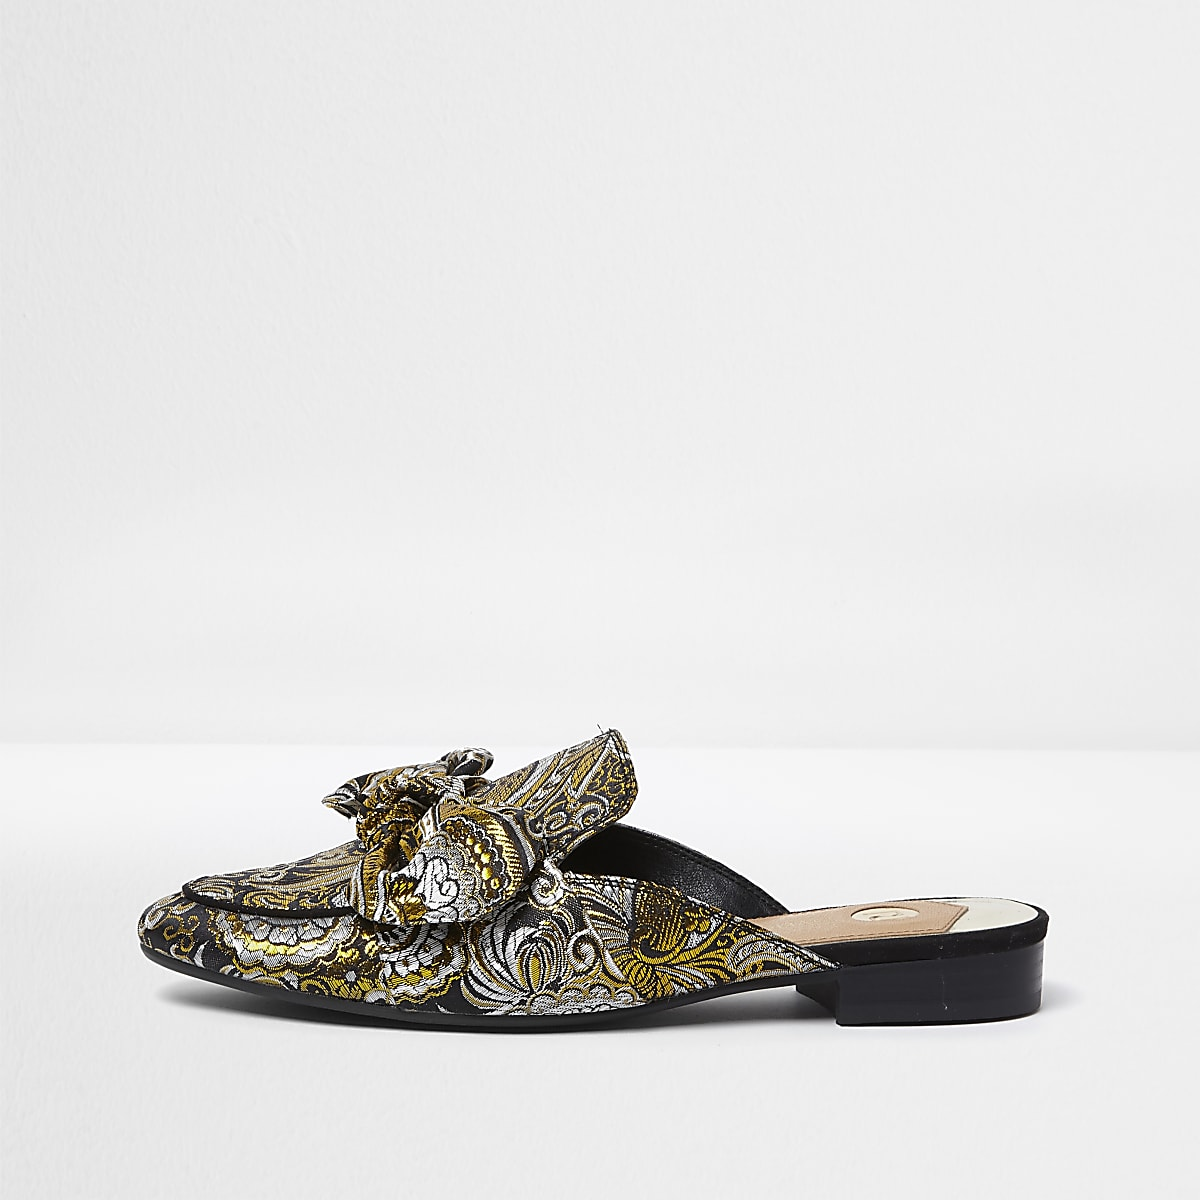 Black jacquard bow top backless loafers